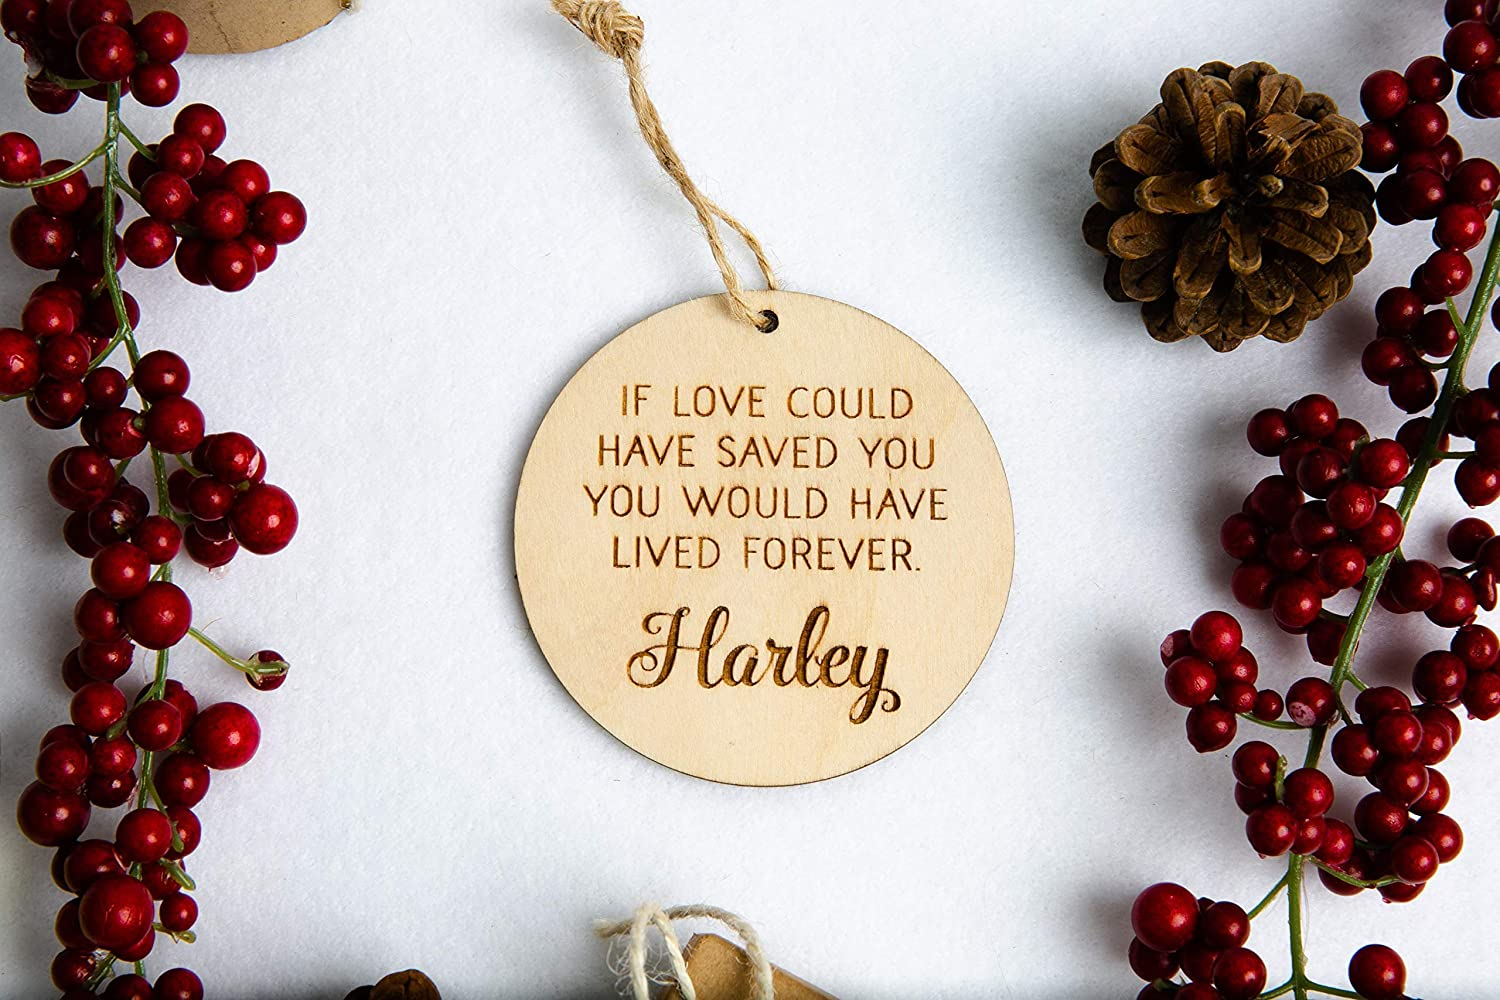 Amazon.com: Personalized Memorial Christmas Ornament with ...